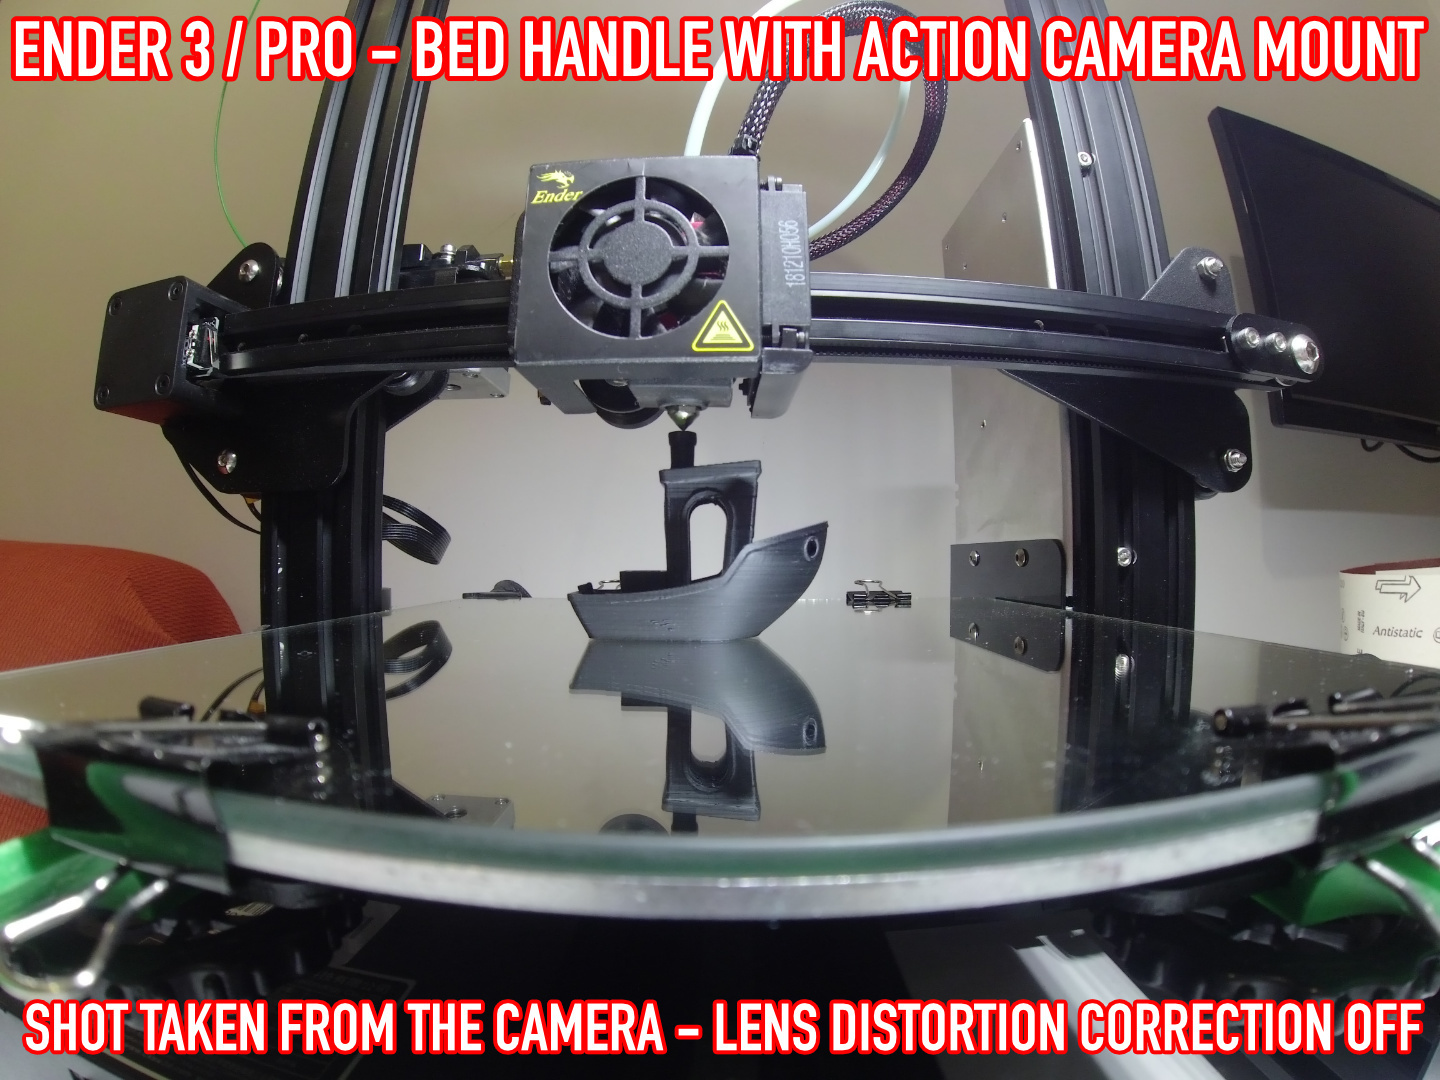 13.jpg Download free STL file ADKS - Ender 3 Bed Handle with action cam mount • Template to 3D print, Adarkstudio